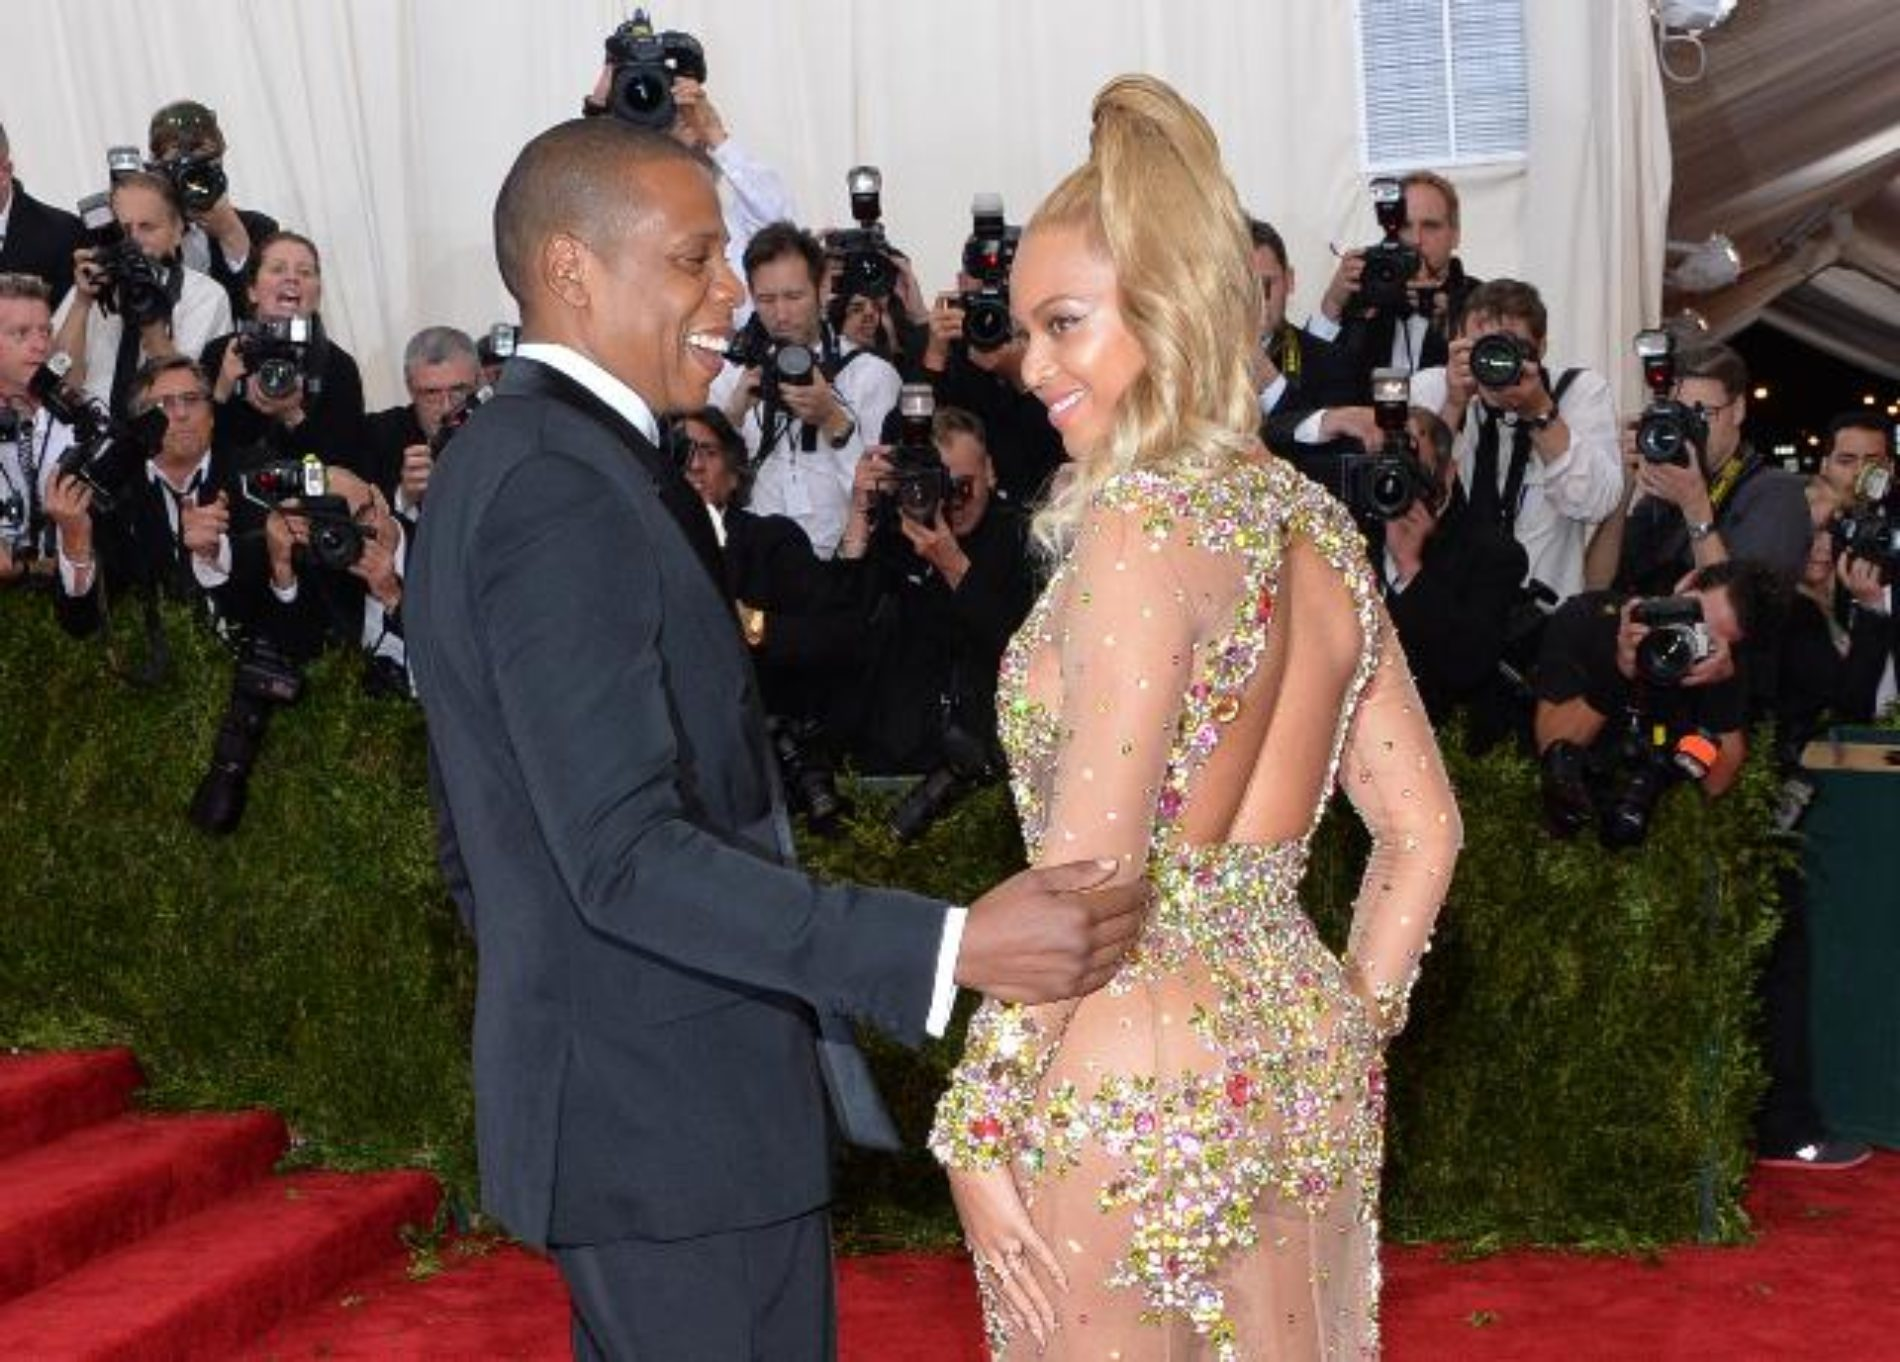 Beyoncé And Jay Z Are The World's Highest-Paid Celebrity Couple Of 2016